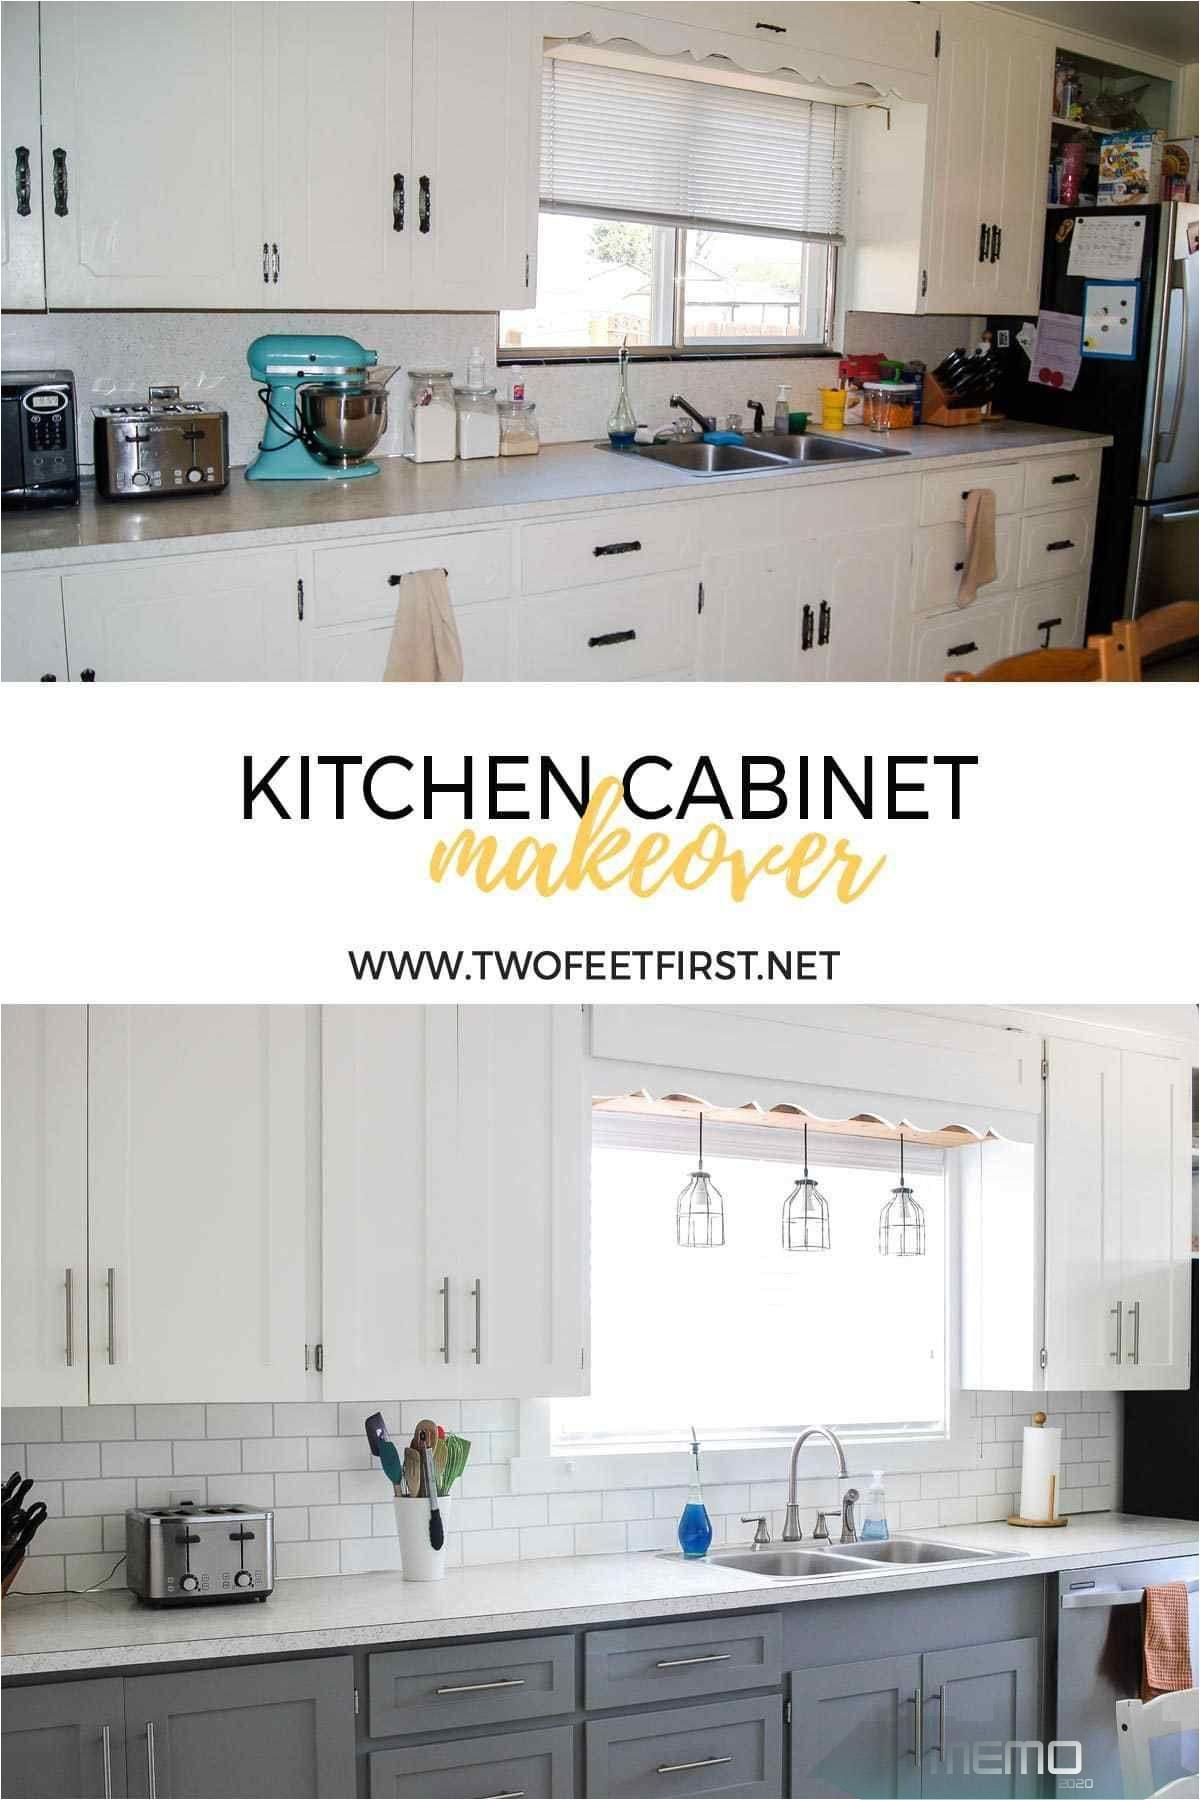 Oct 29 2018 Are You Looking At Painting Your Kitchen Cabinets Here Are Some Tips On Painting In 2020 Diy Kitchen Renovation Kitchen Renovation New Kitchen Cabinets